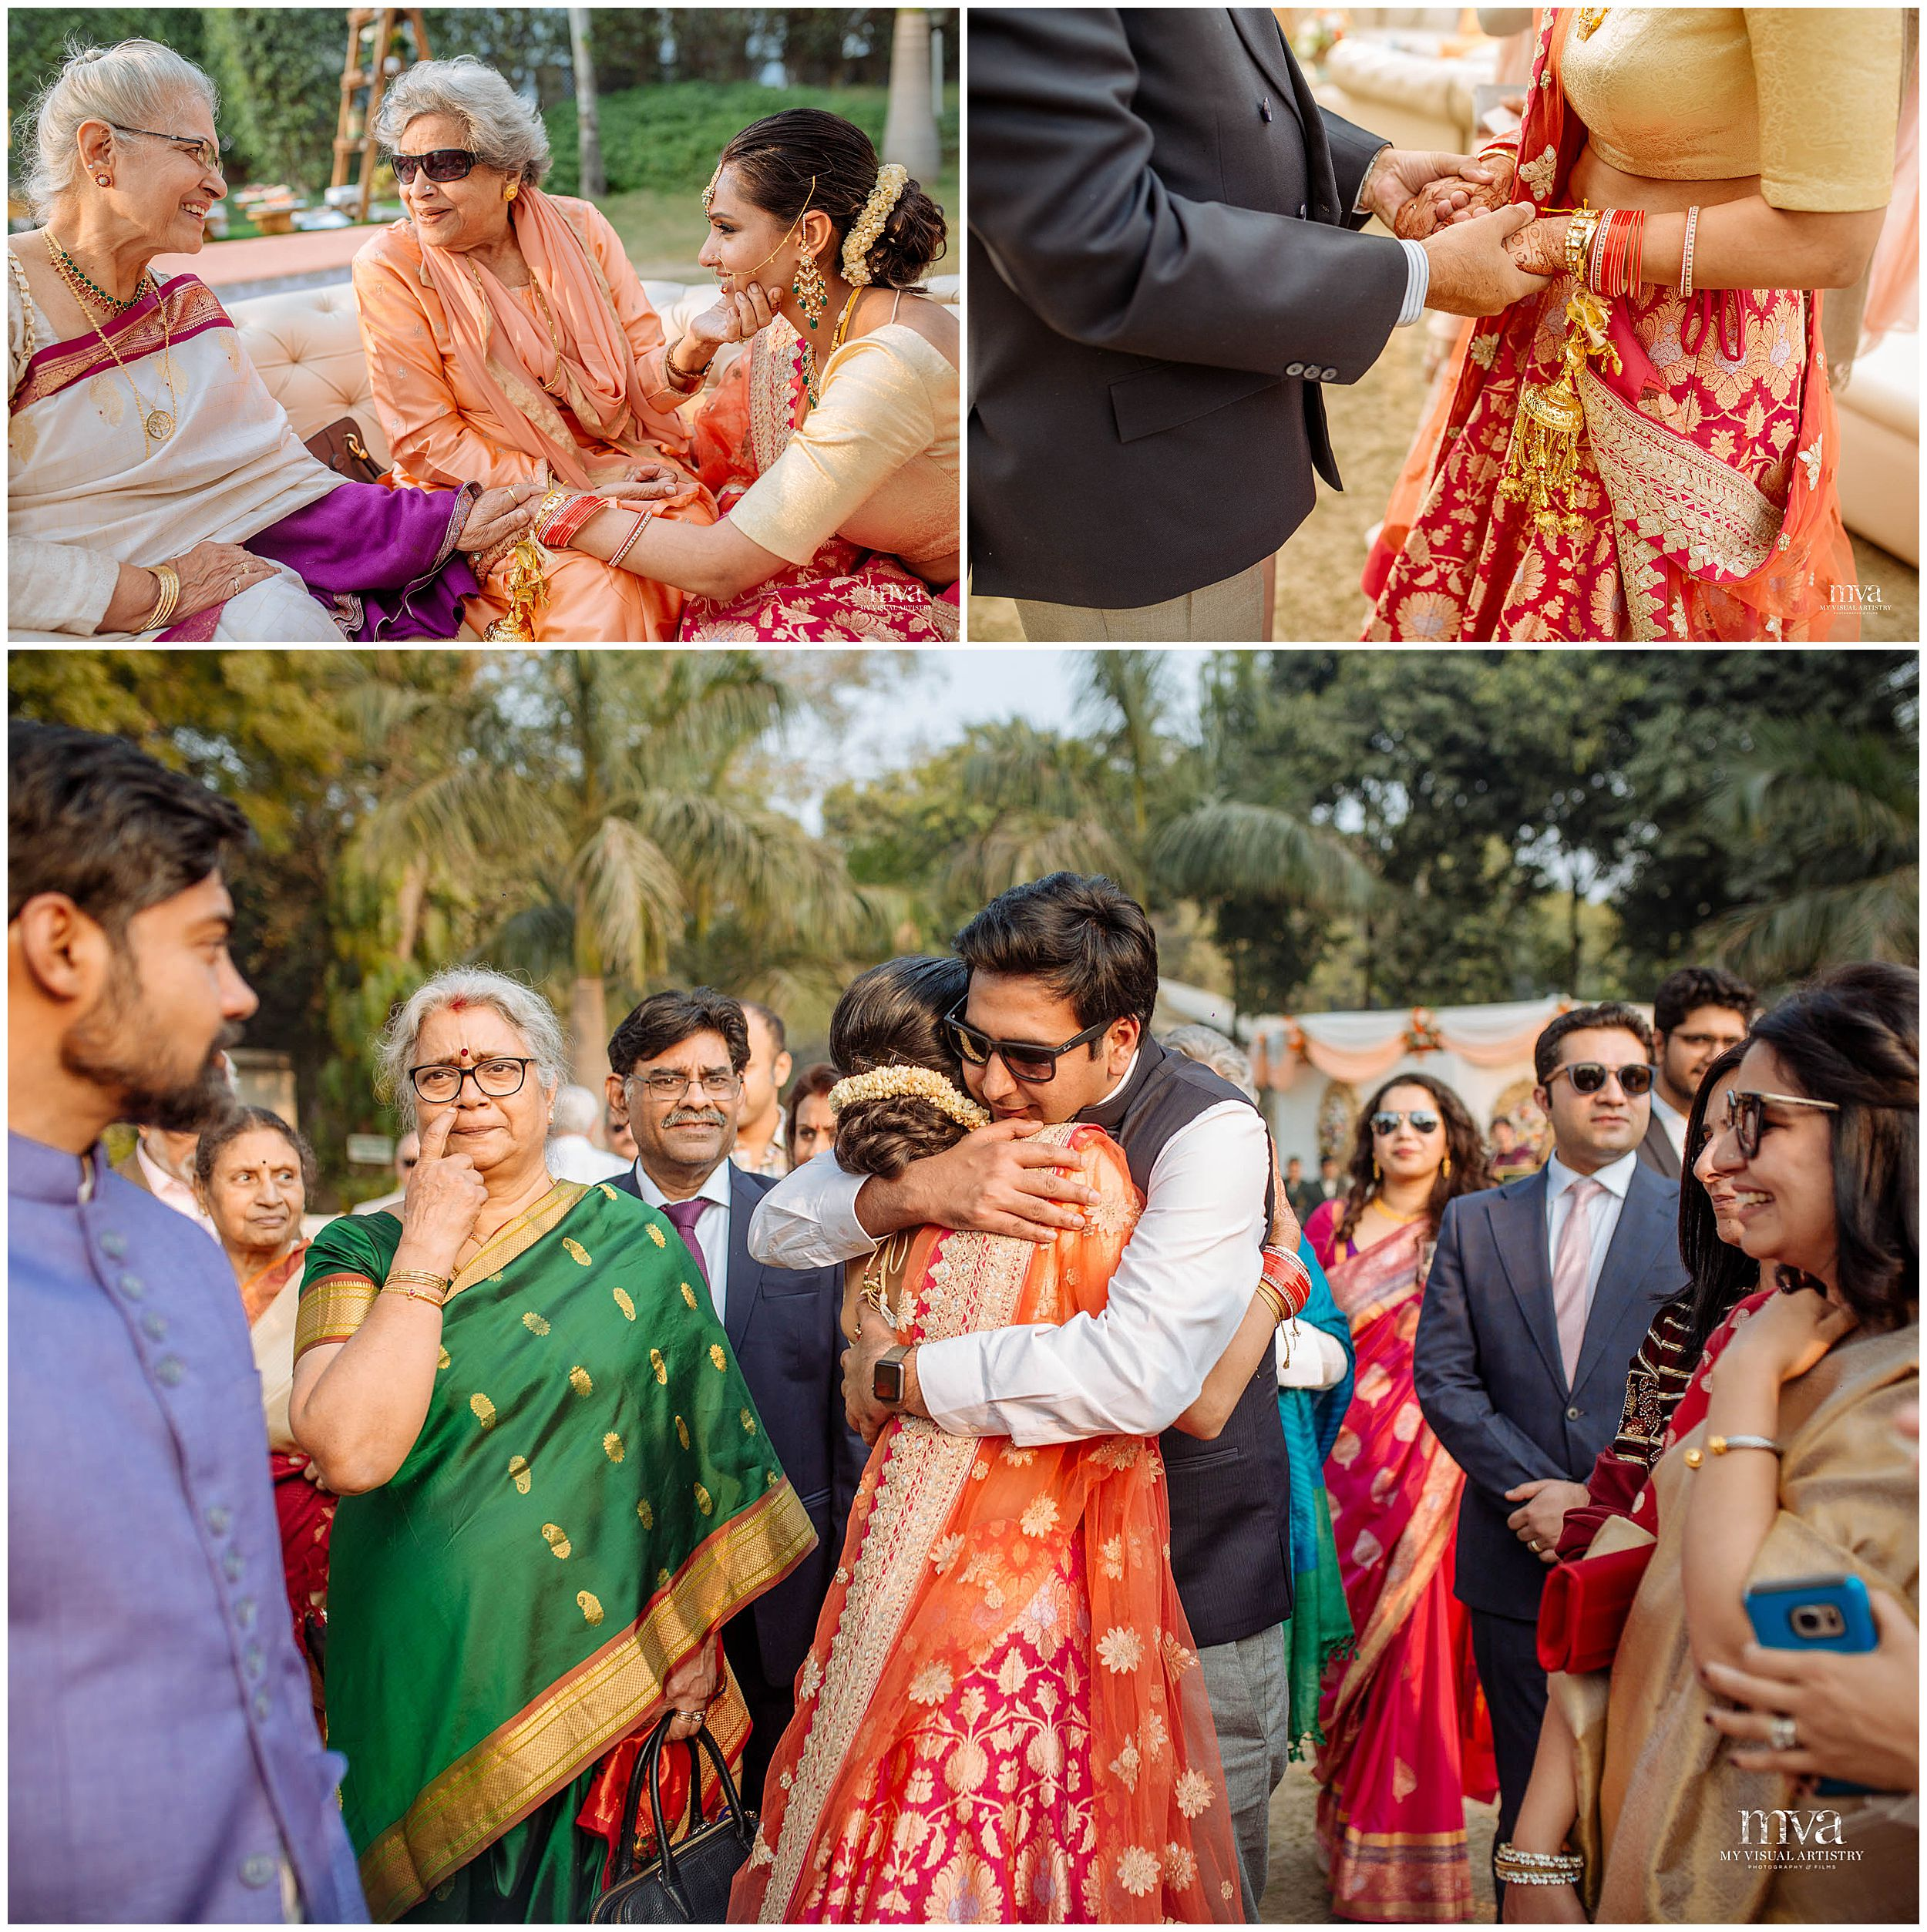 SAHIBA_KARTHIK_MYVISUALARTISTRY_WEDDING_PHOTOGRAPHY_MVA_KERALA_GURGAON_0046.jpg